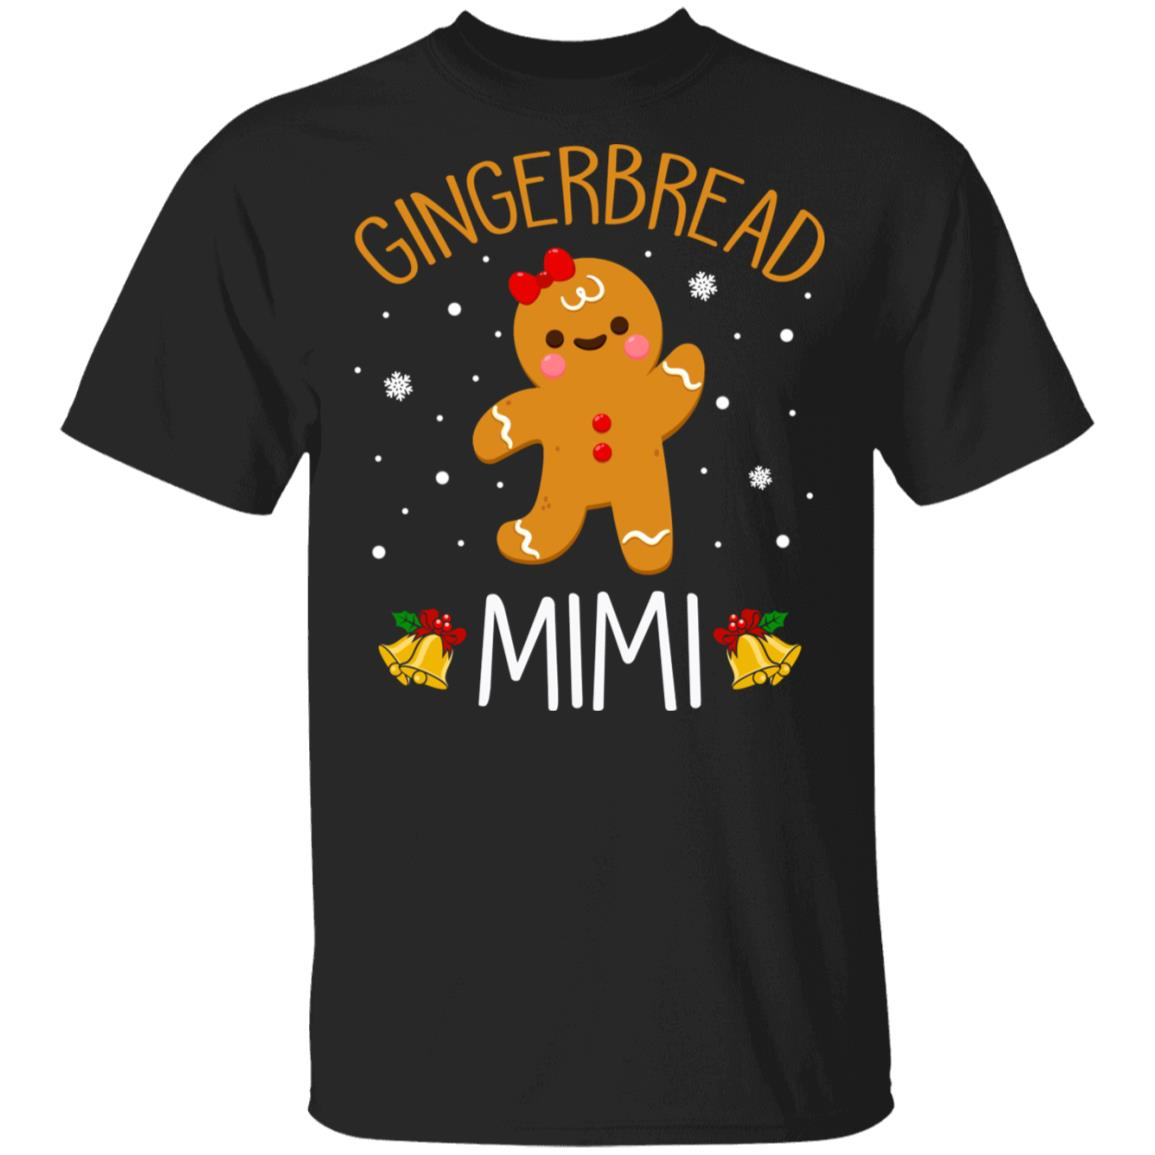 Xmas Cute Gingerbread Men Mimi Christmas Family Unisex Short Sleeve